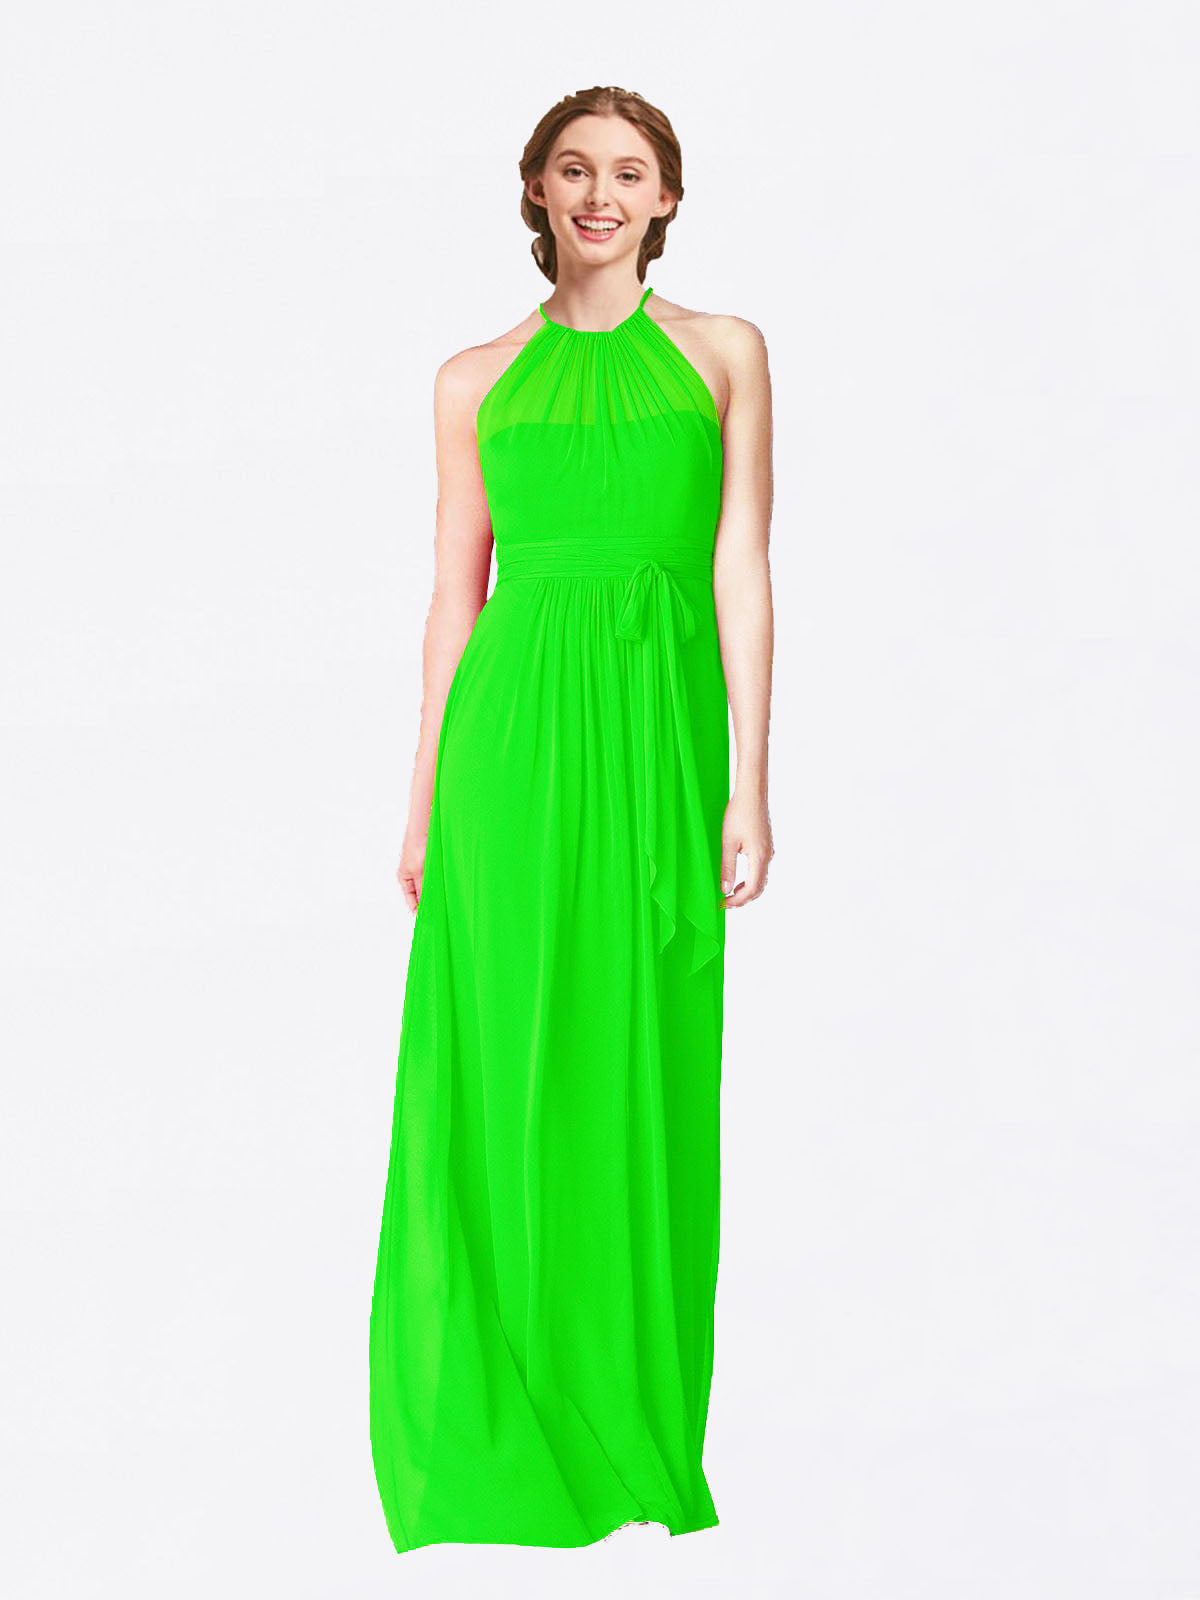 Long A-Line Halter Sleeveless Lime Green Chiffon Bridesmaid Dress Laura